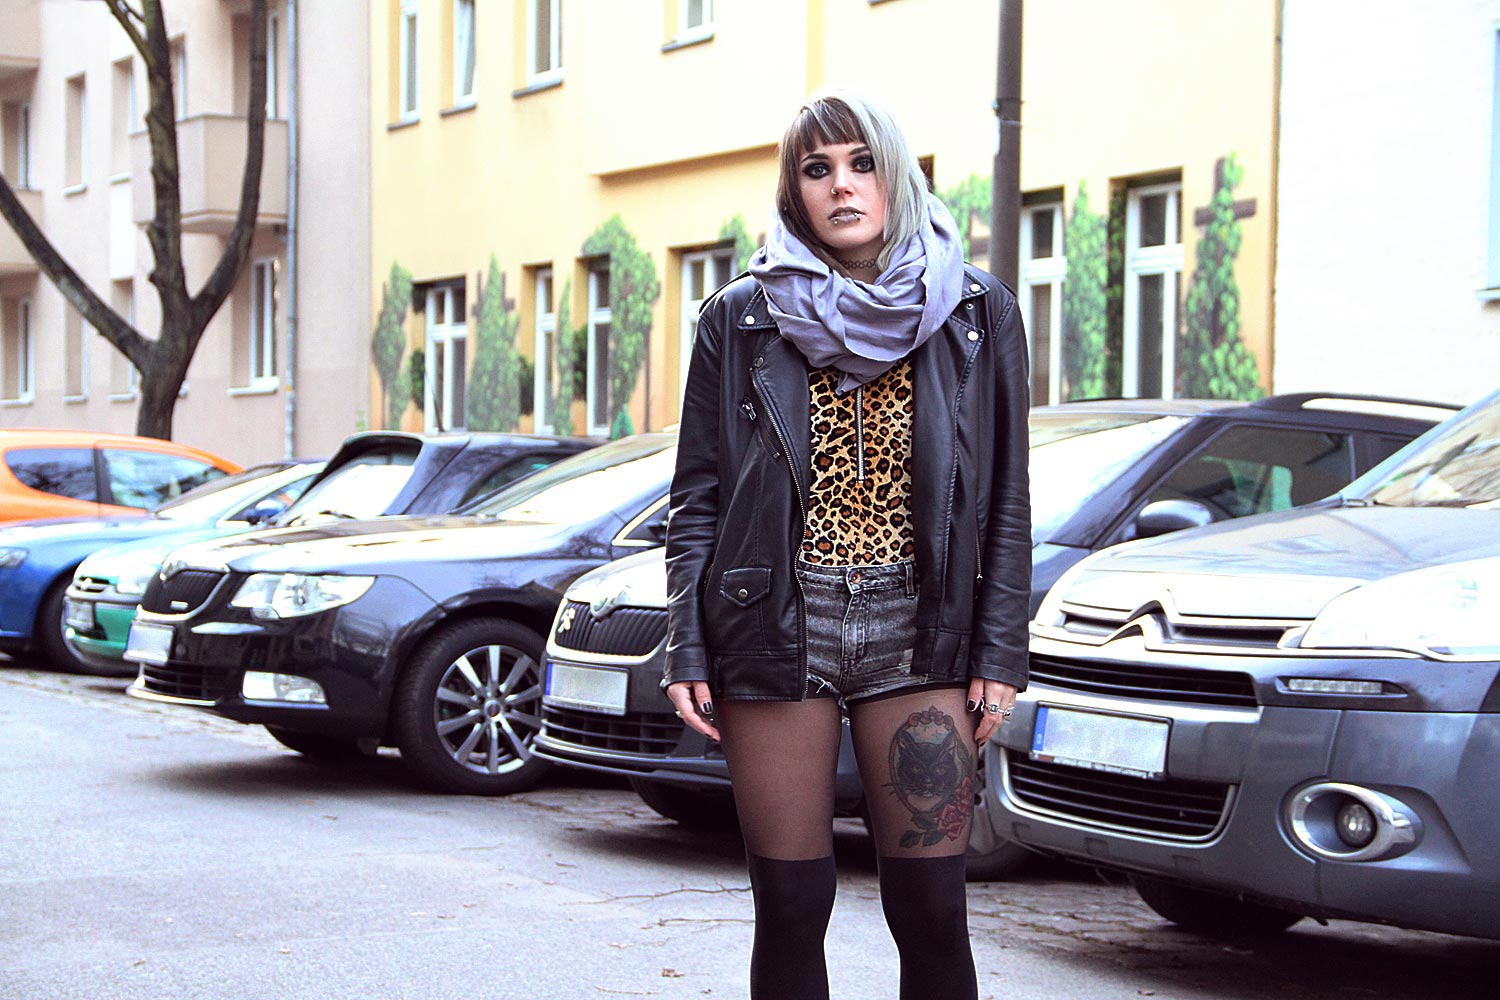 berlin, berlin fashion, berlin streetstyle, berlin fashion blogger, blogger, fashion blogger, punk, grunge, punk fashion, grunge fashion, alternative, alternative fashion, alternative girl, altgirl, snakebites, girls with piercings, scenehair, h&m, shorts, ripped, used, ripped jeans, usedlook, overknee, strumpfhose, leo, leopard, girlswithtattoos, tattoo, sneakers, twotone, splithair, black milk, black milk clothing, peggy bundy, samt, velvet, zip suit, body, american apparel, circle scarf, slate grey, slate, leather jacket, vegan leather jacket, lederjacke, kunstleder, kunstlederjacke, oversized, oversized jacke, animal print, mode, alternative mode, plateau, plateau sneaker